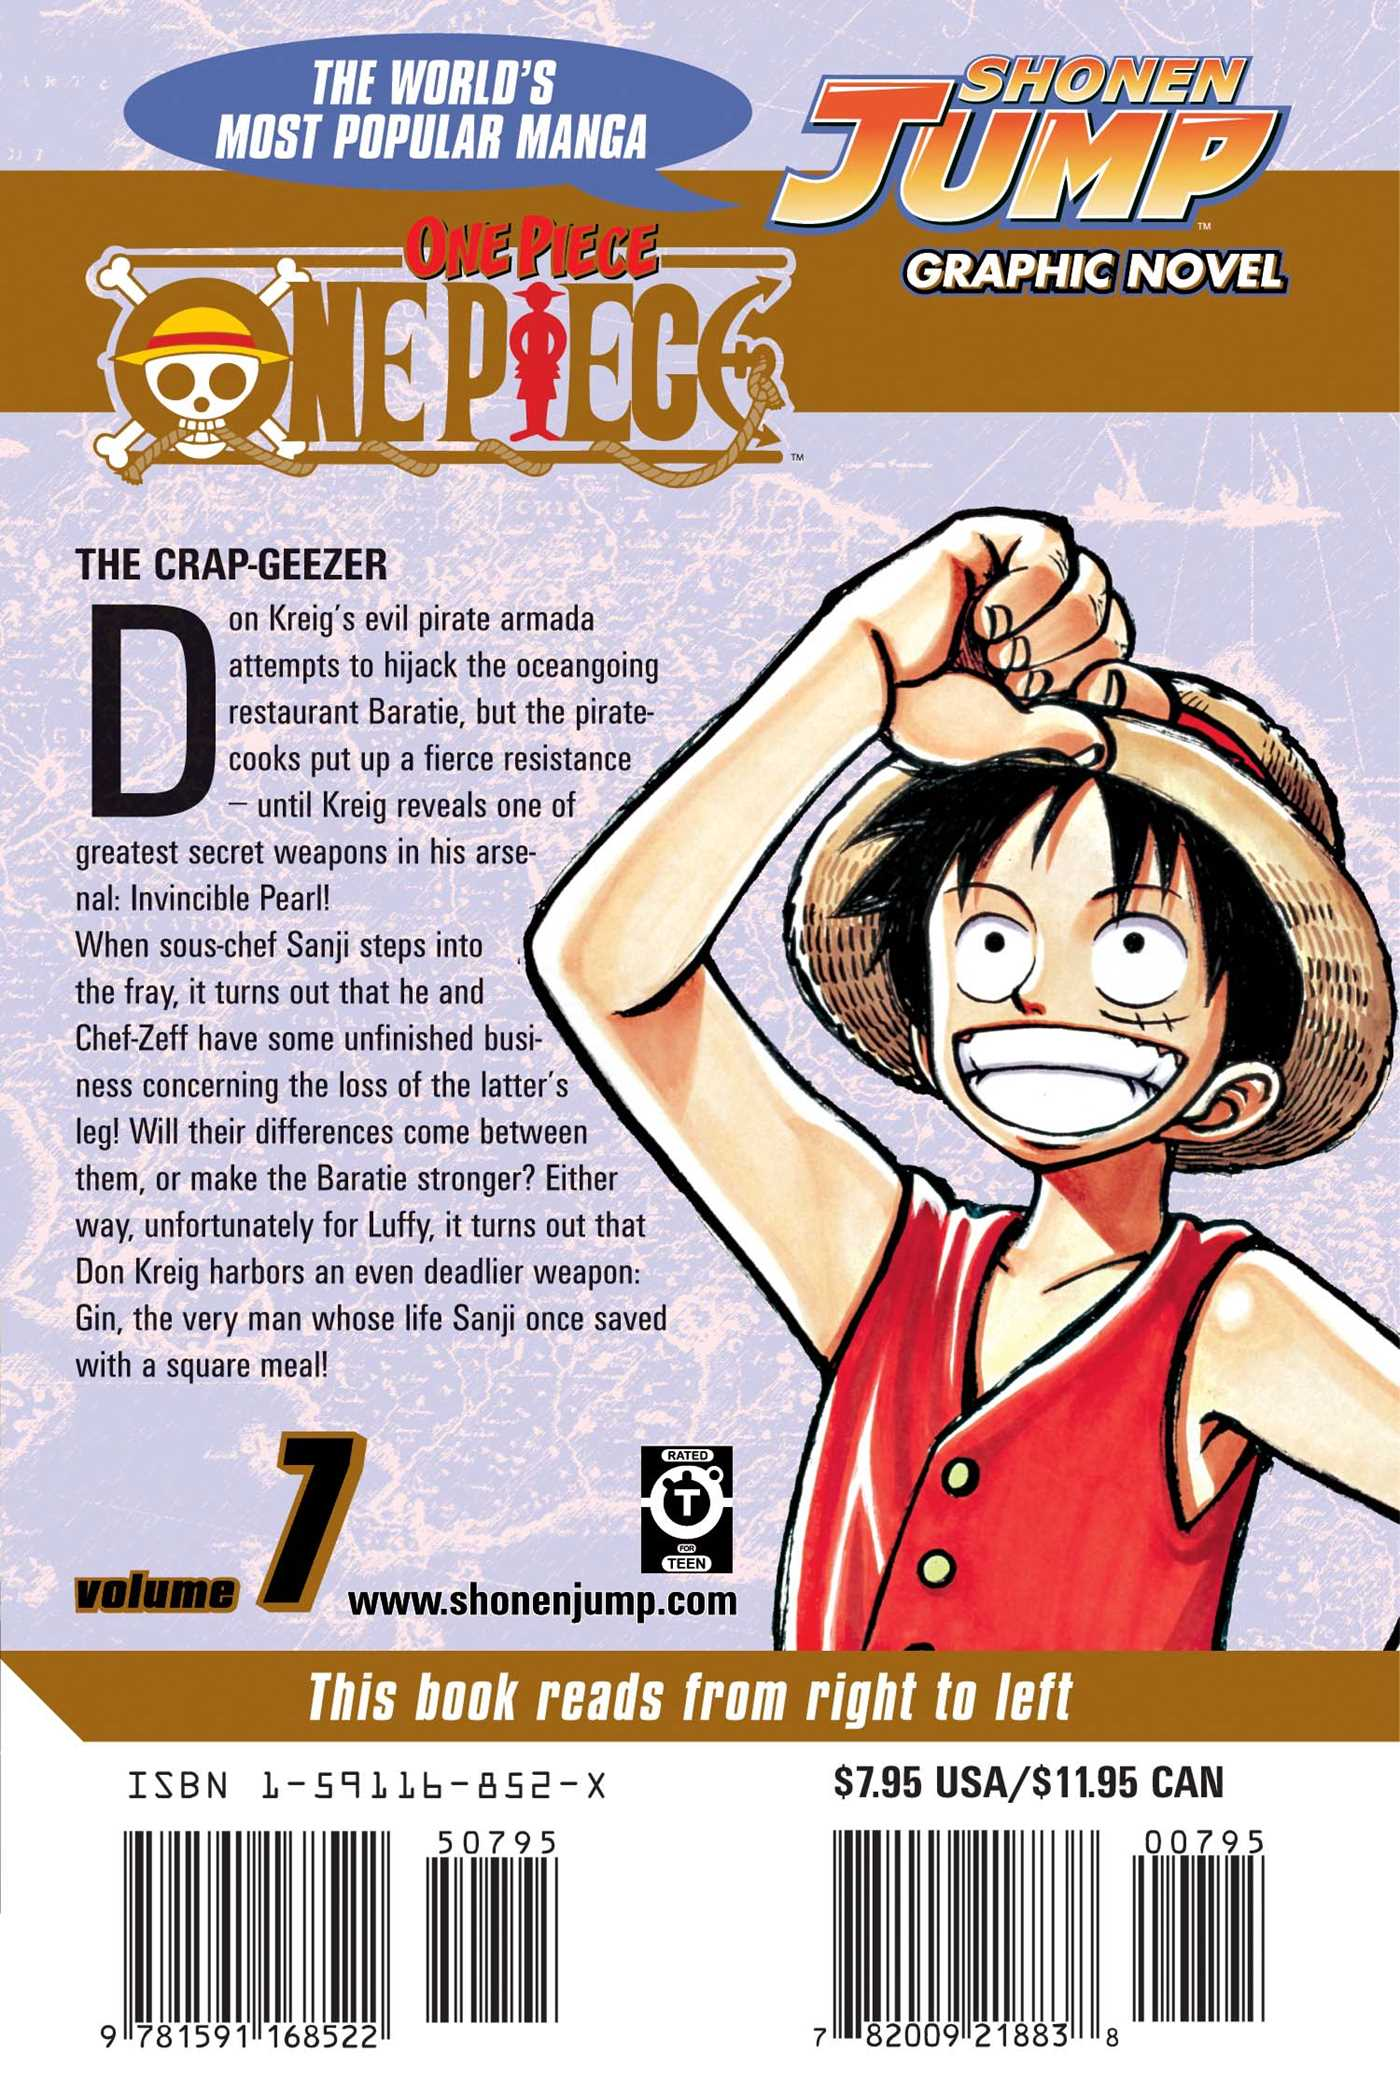 One-piece-vol-7-9781591168522_hr-back